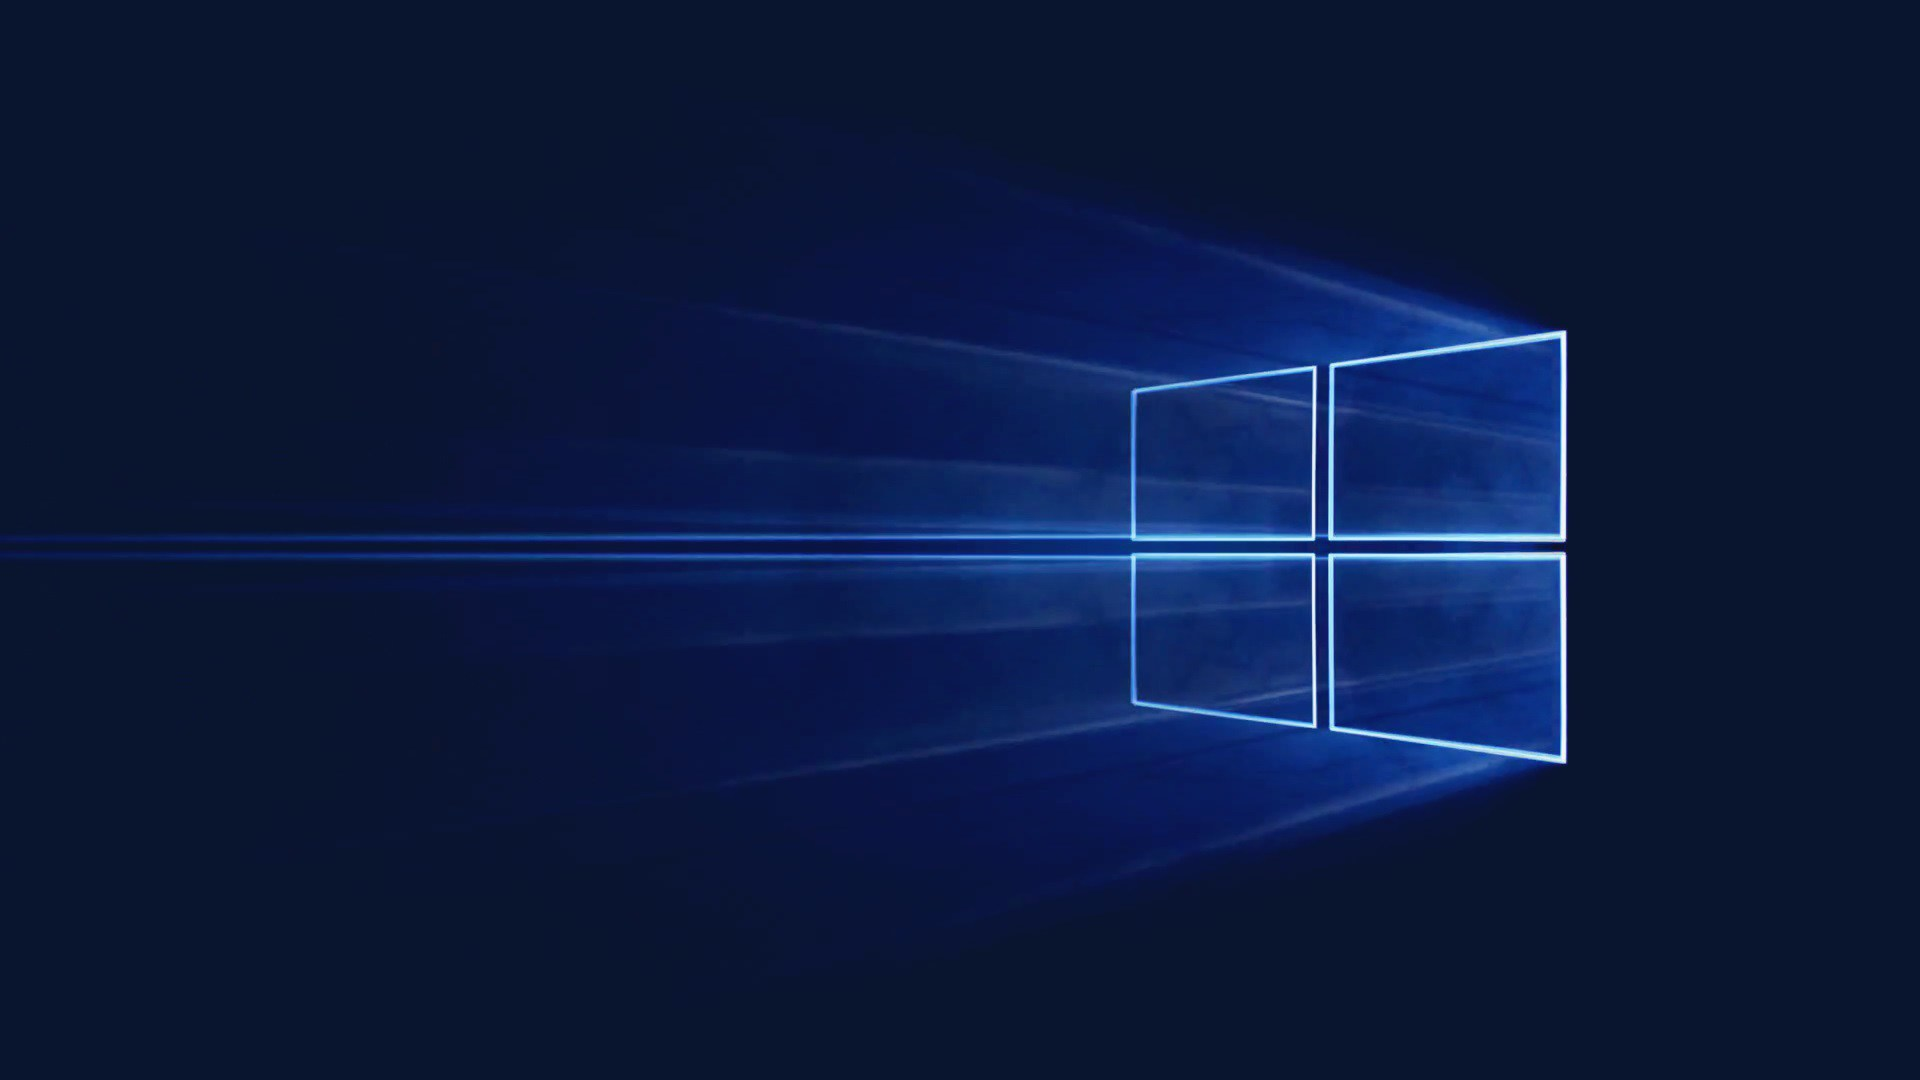 Windows 10 ya tiene update